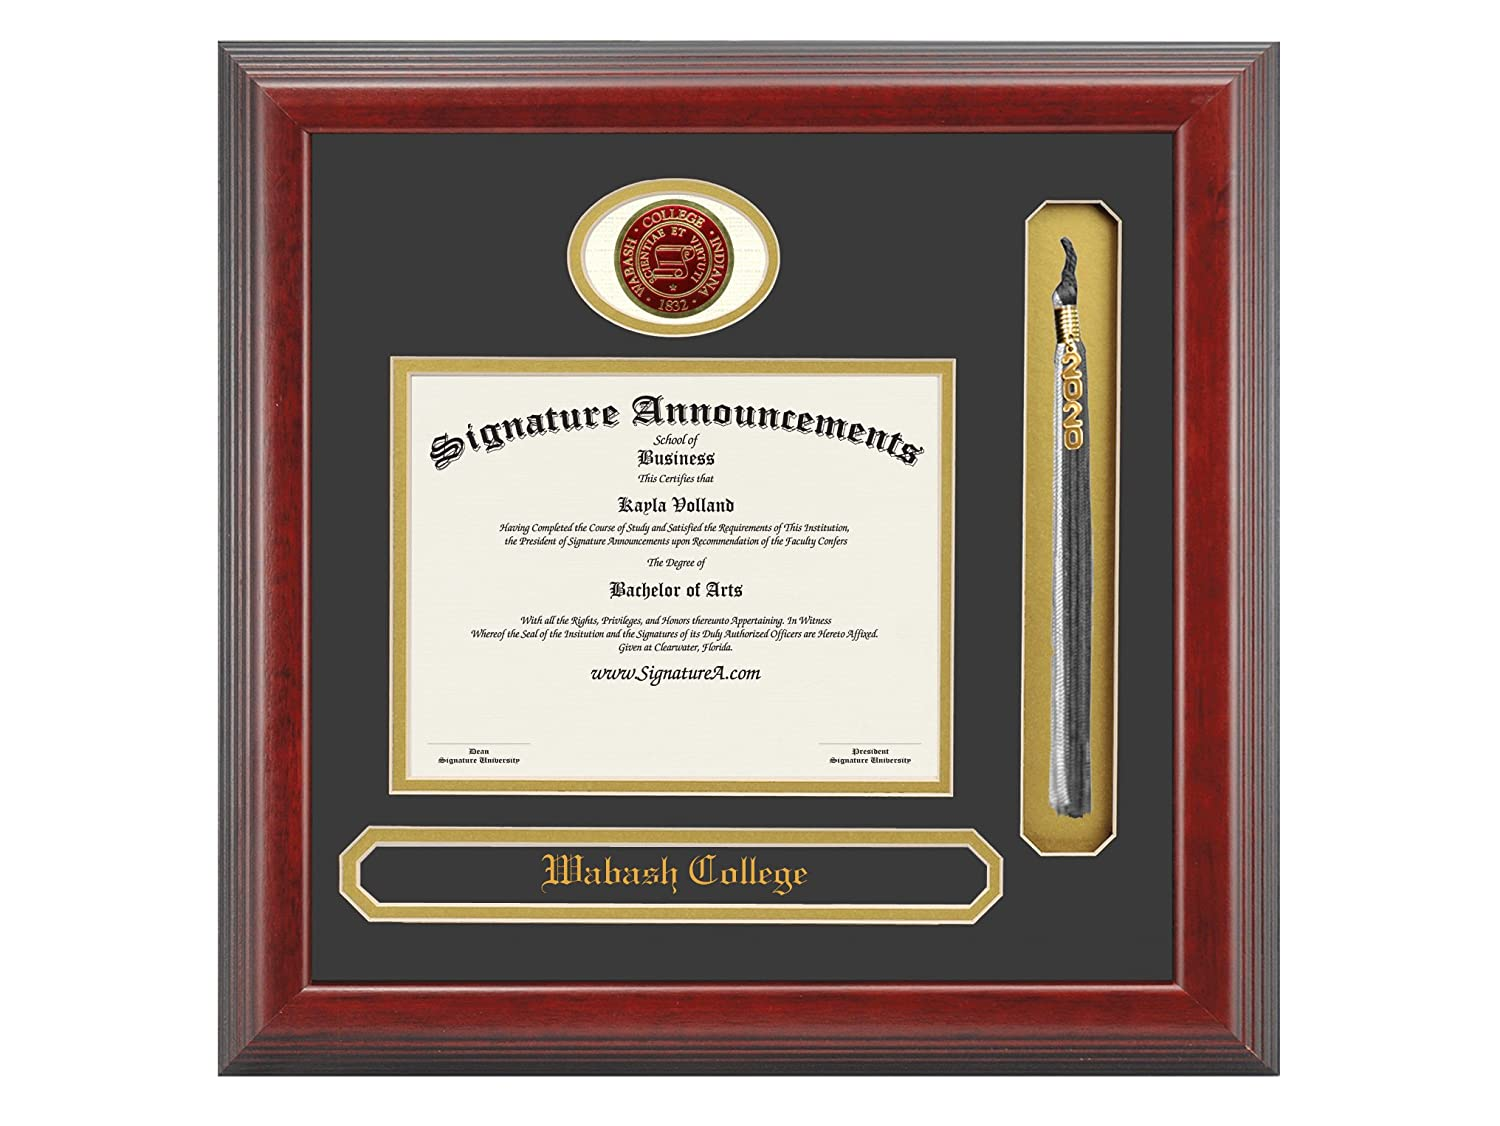 23 x 24 Name /& Tassel Graduation Diploma Frame Cherry Signature Announcements Wabash College Undergraduate Sculpted Foil Seal